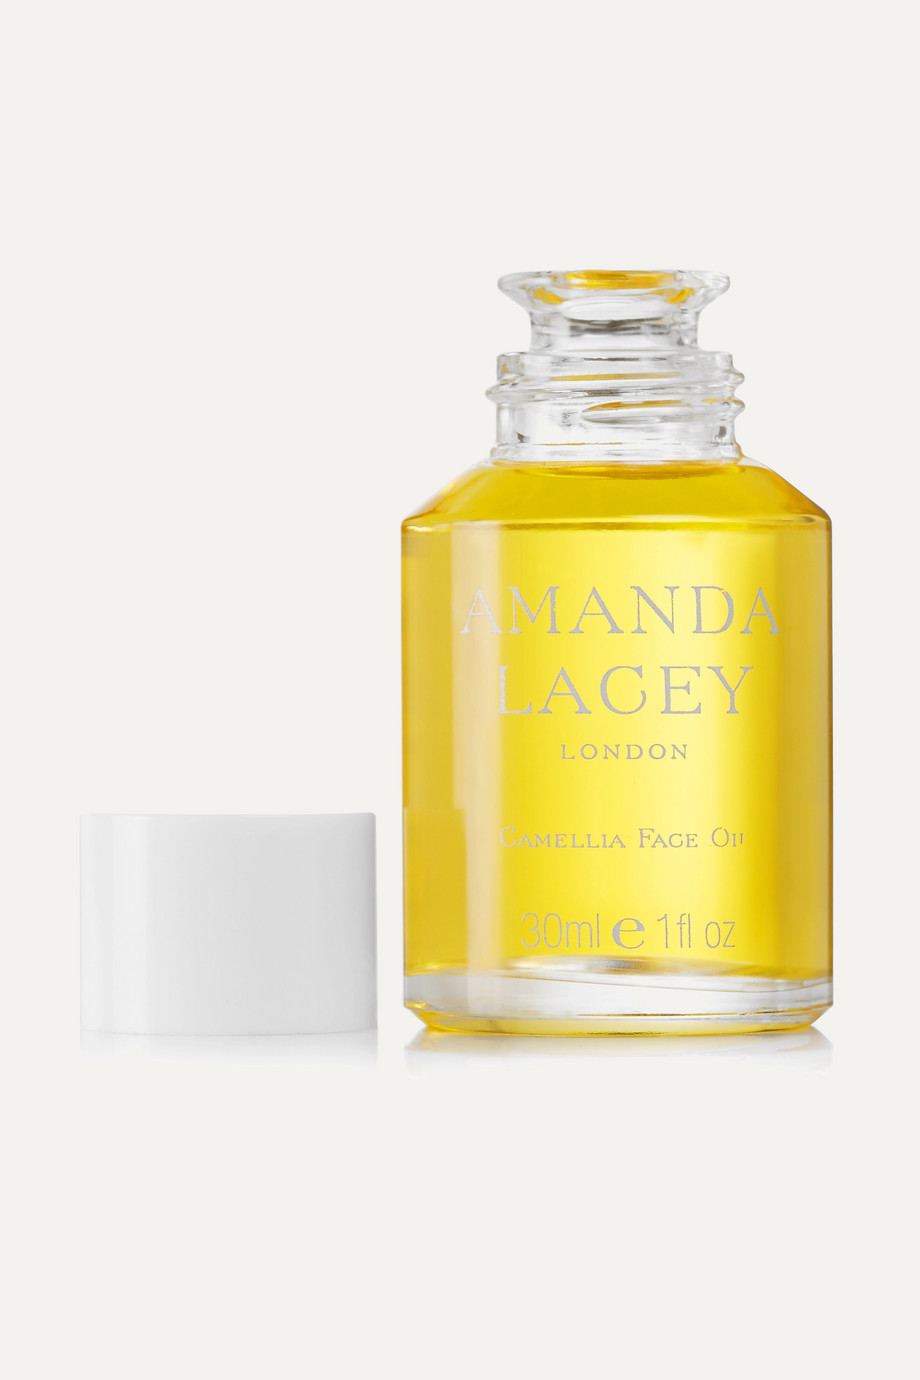 AMANDA LACEY Camellia Face Oil, 30ml